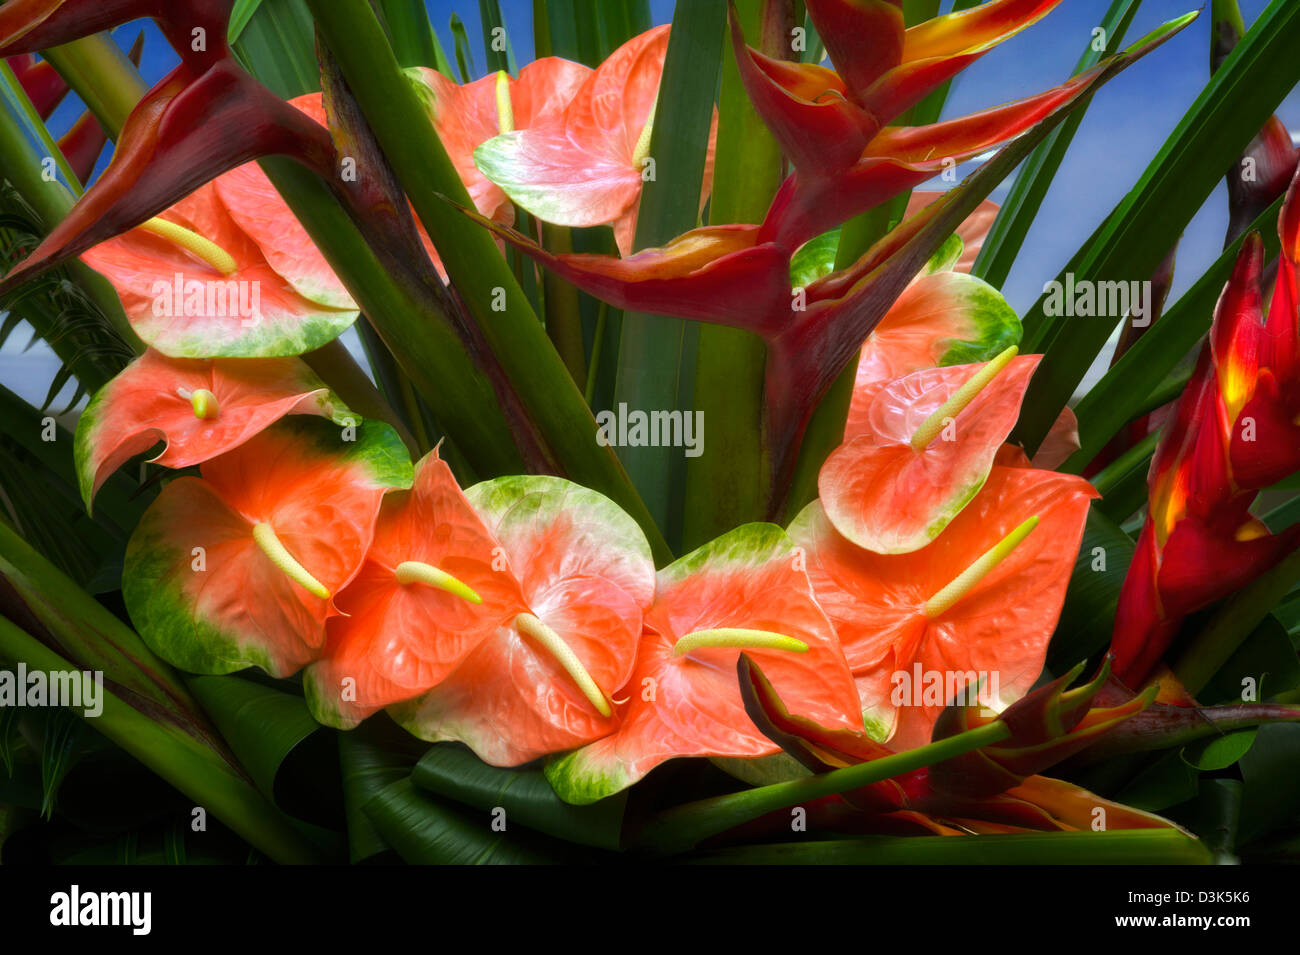 Fleur tropicale afficher avec Anthurium. Photo Stock